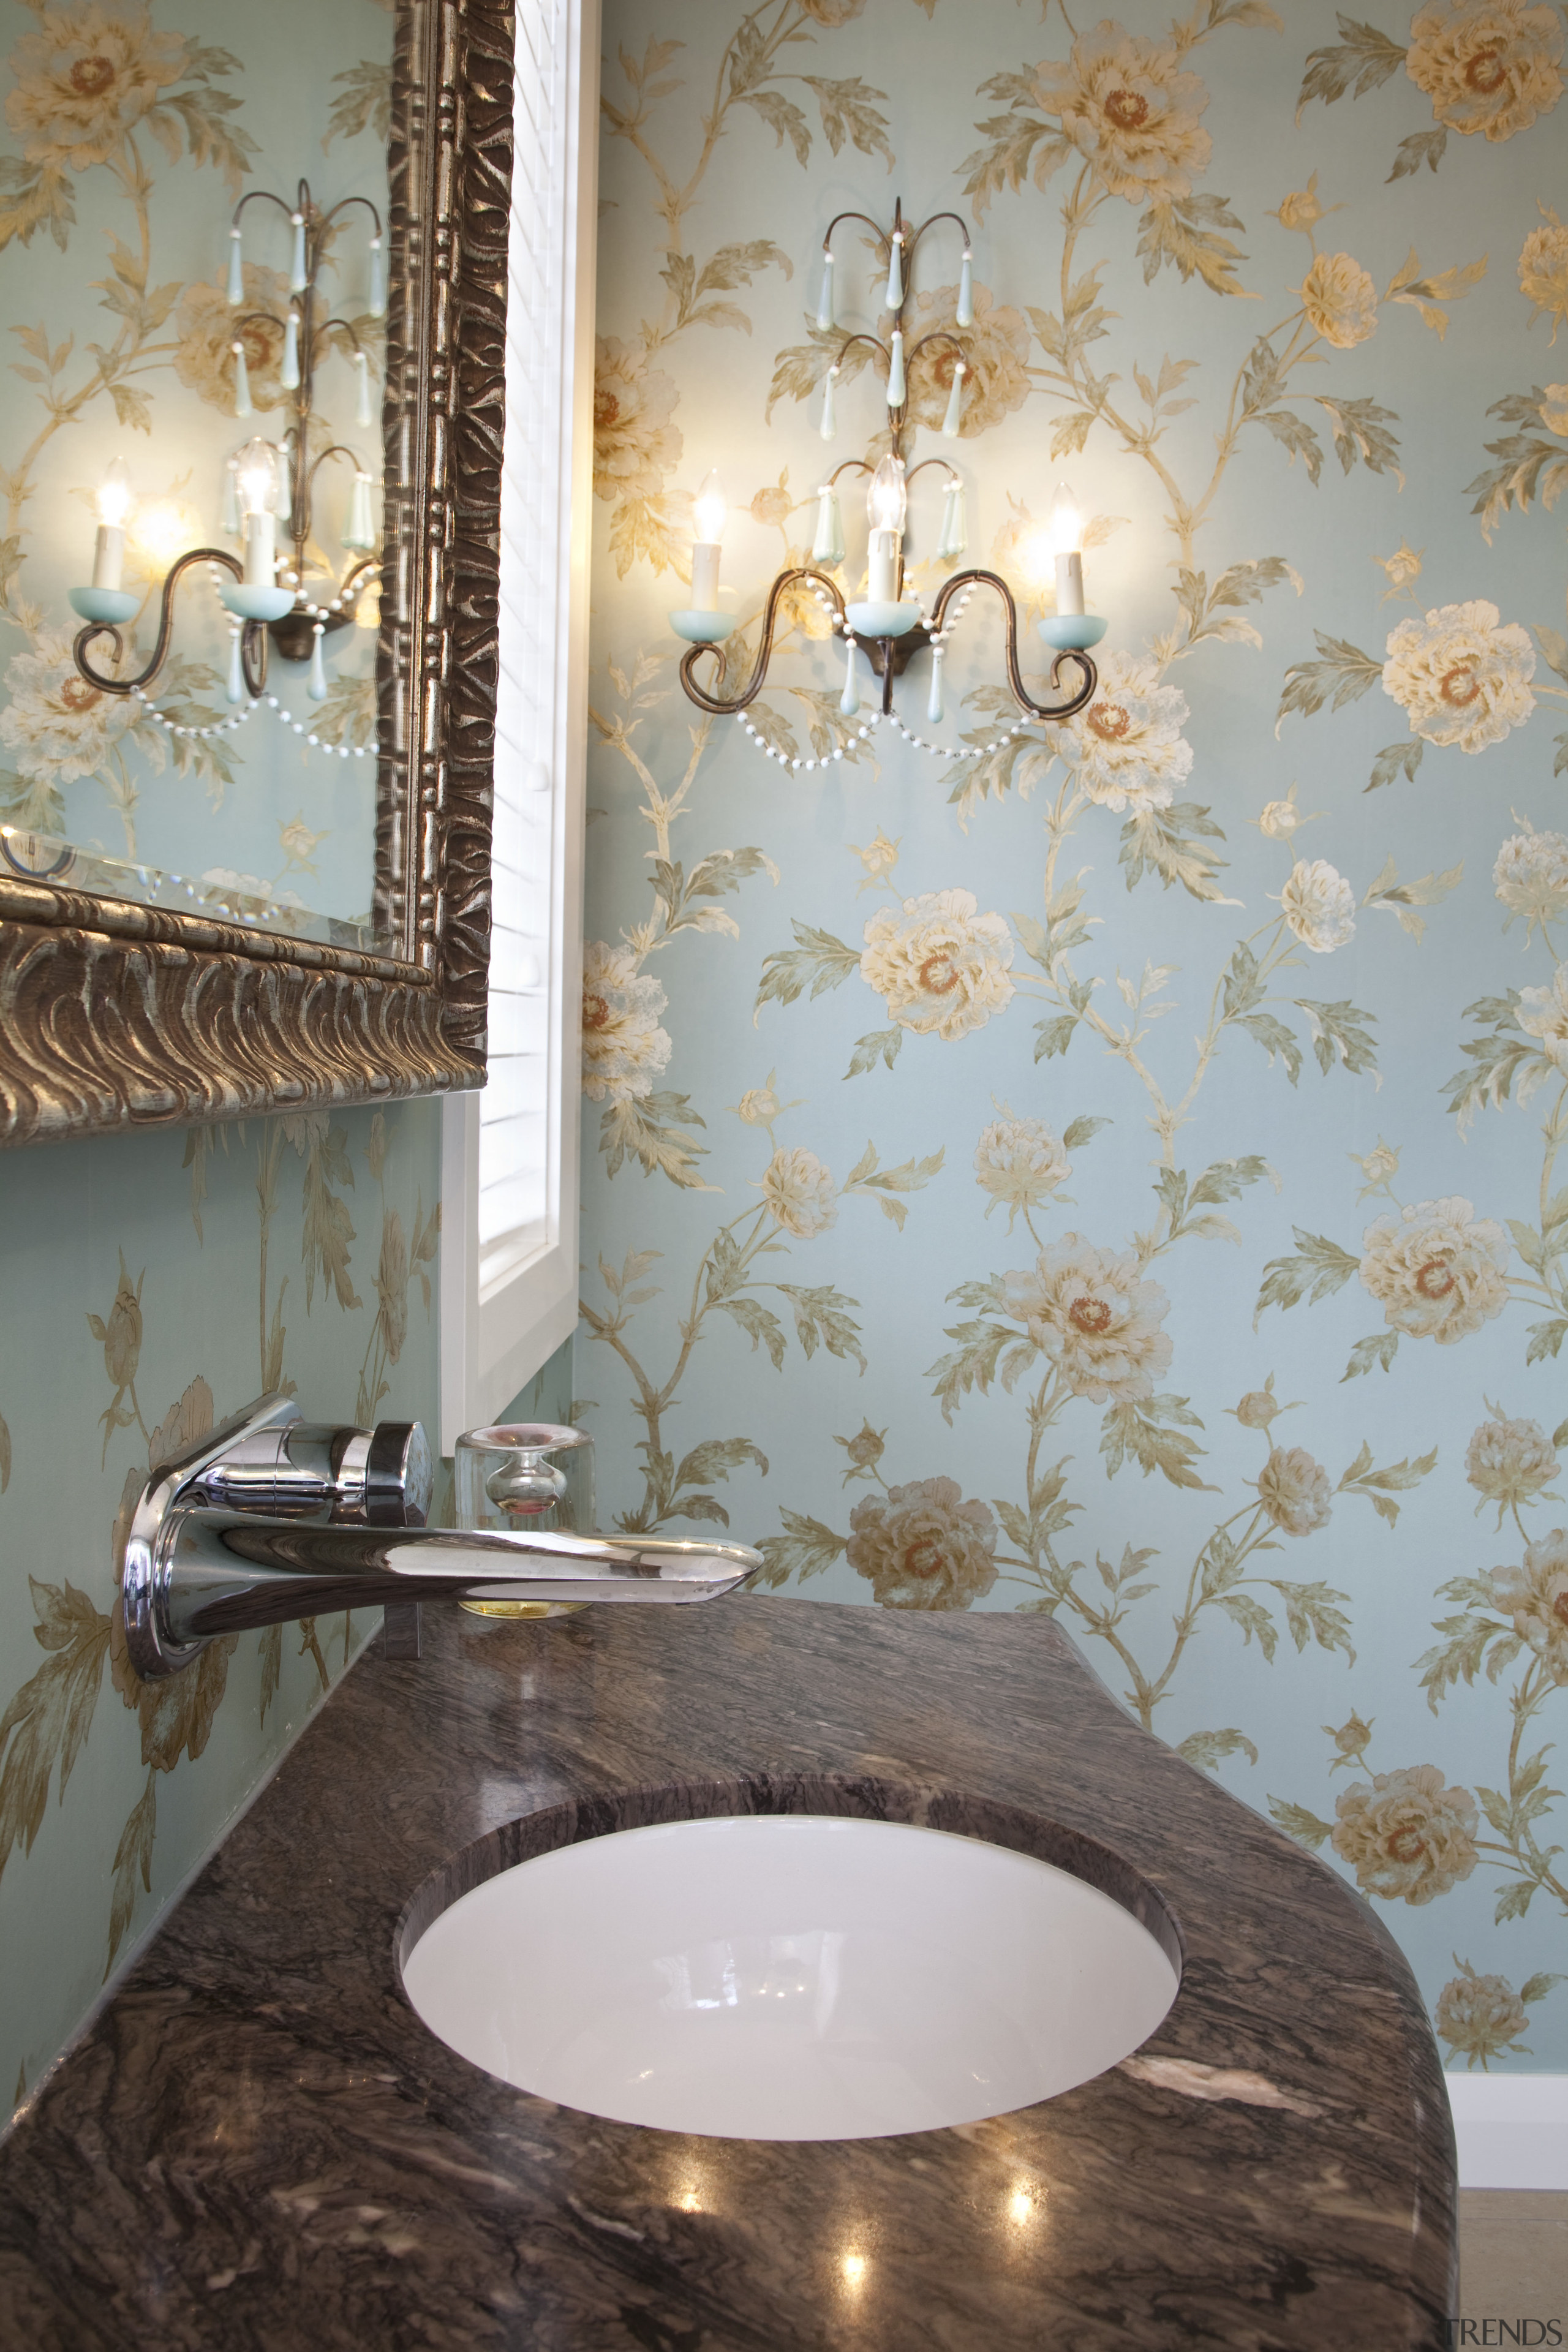 View Of Bathroom With Floral Wallpa Gallery 5 Trends